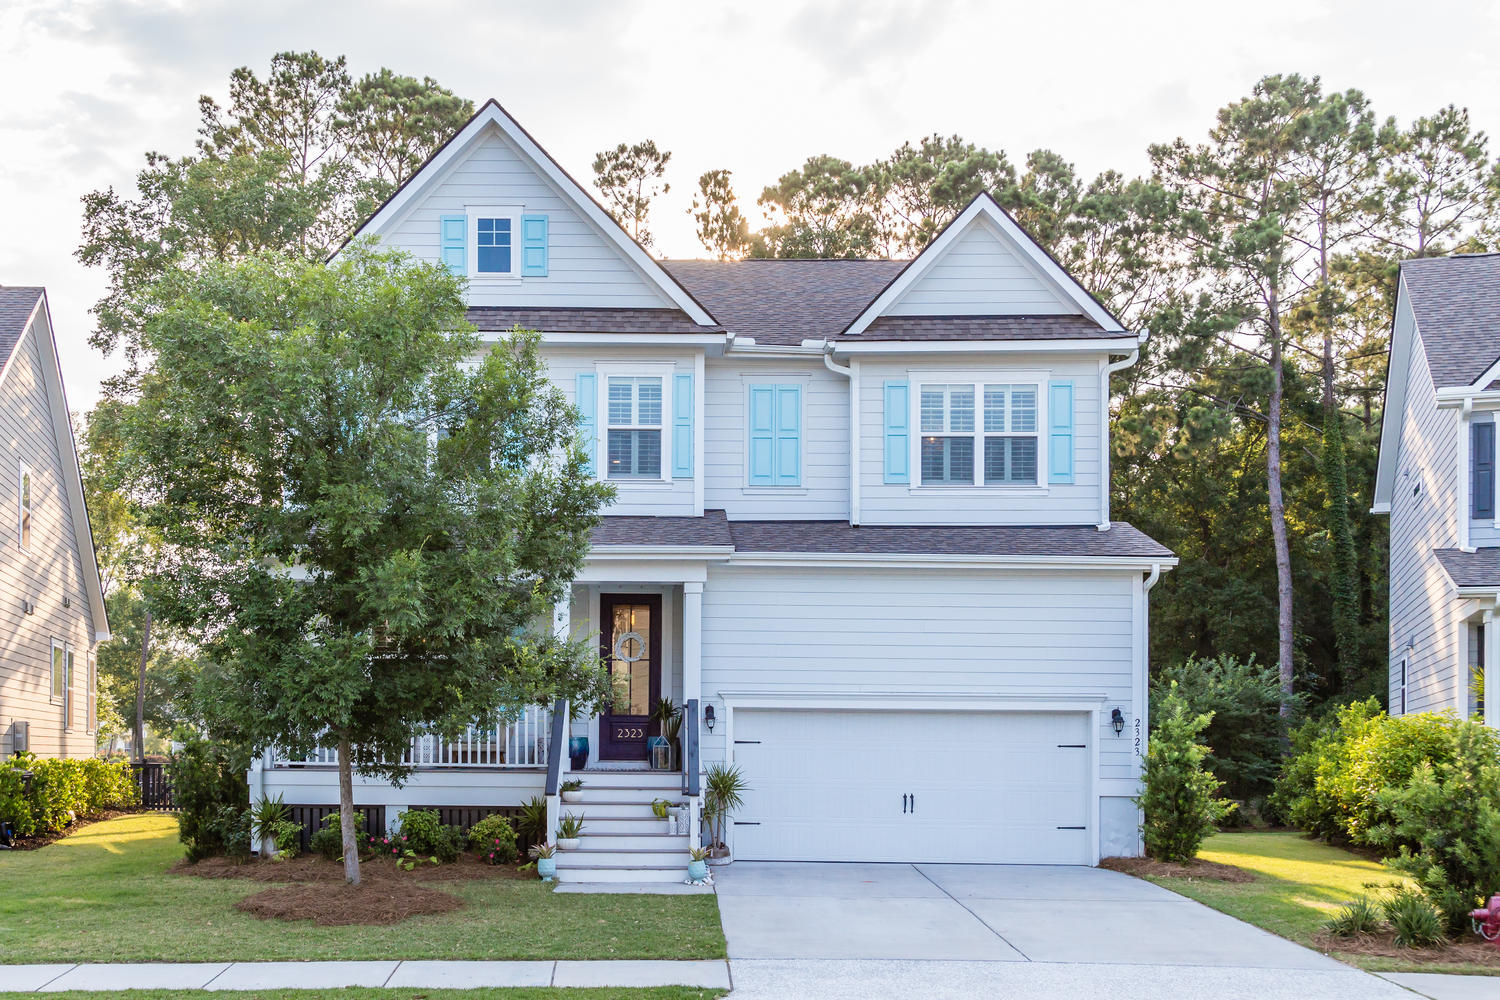 Oyster Point Homes For Sale - 2323 Skyler, Mount Pleasant, SC - 0